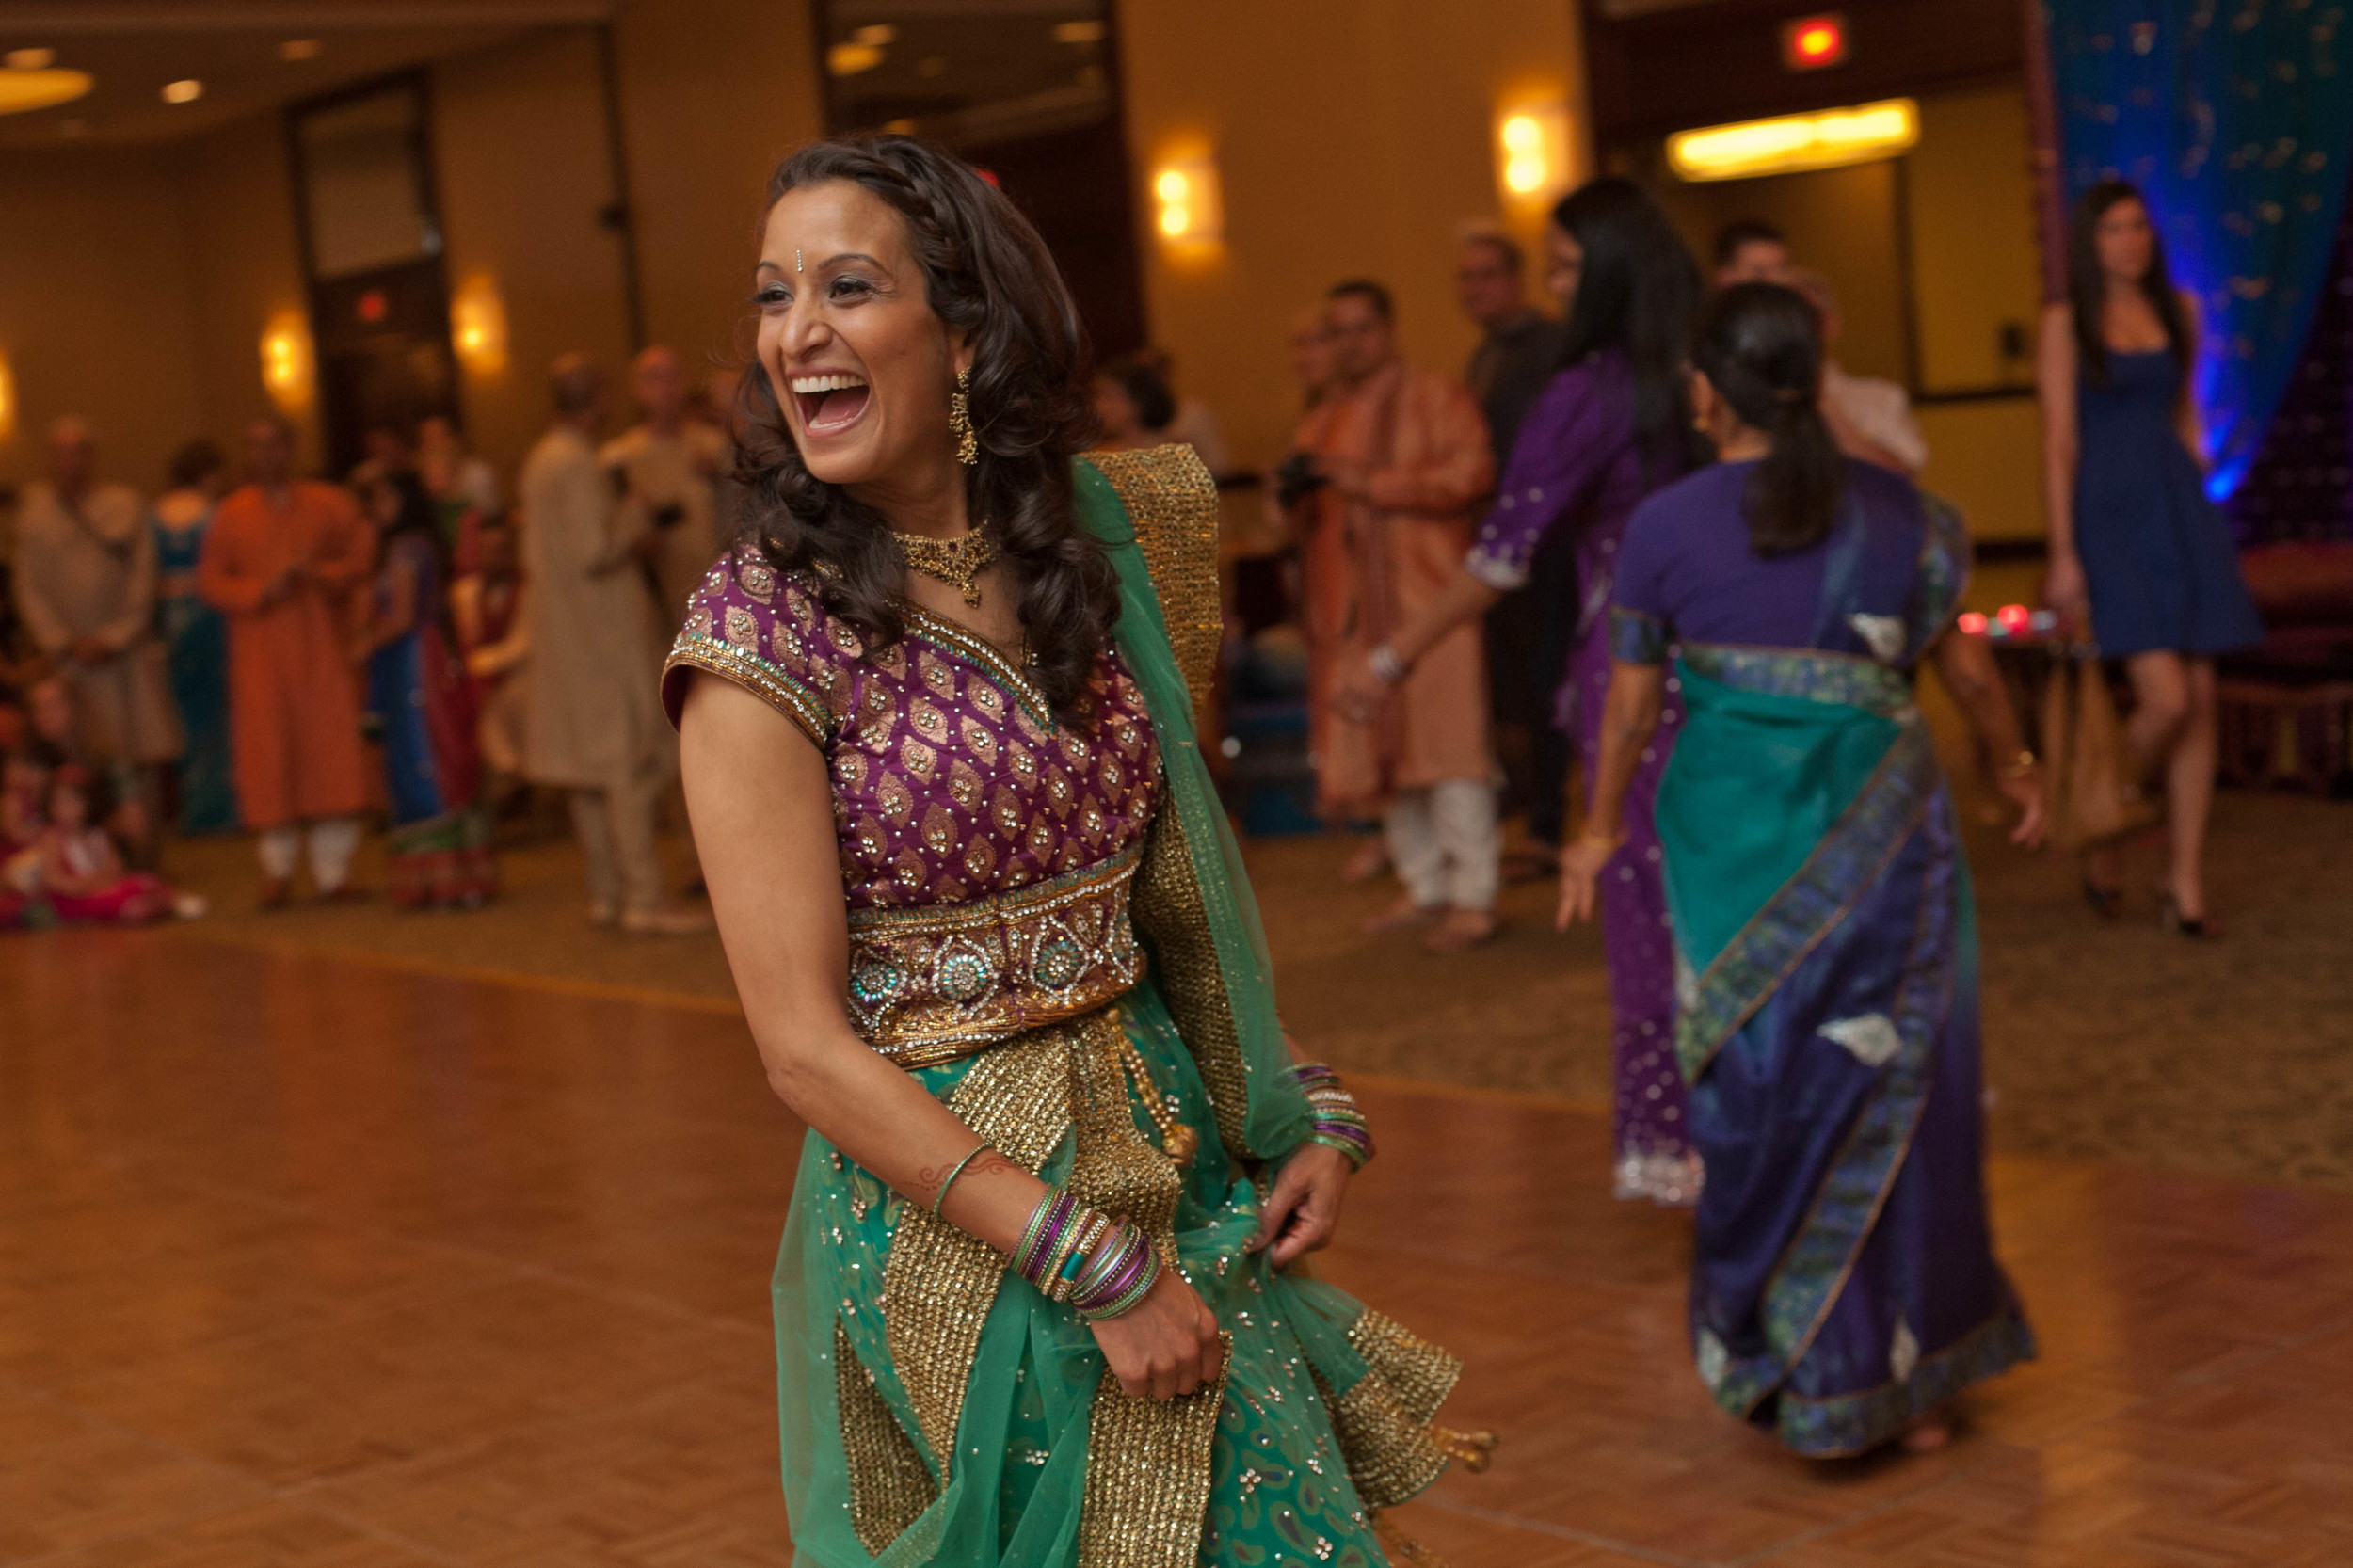 Aditi getting the dancing started